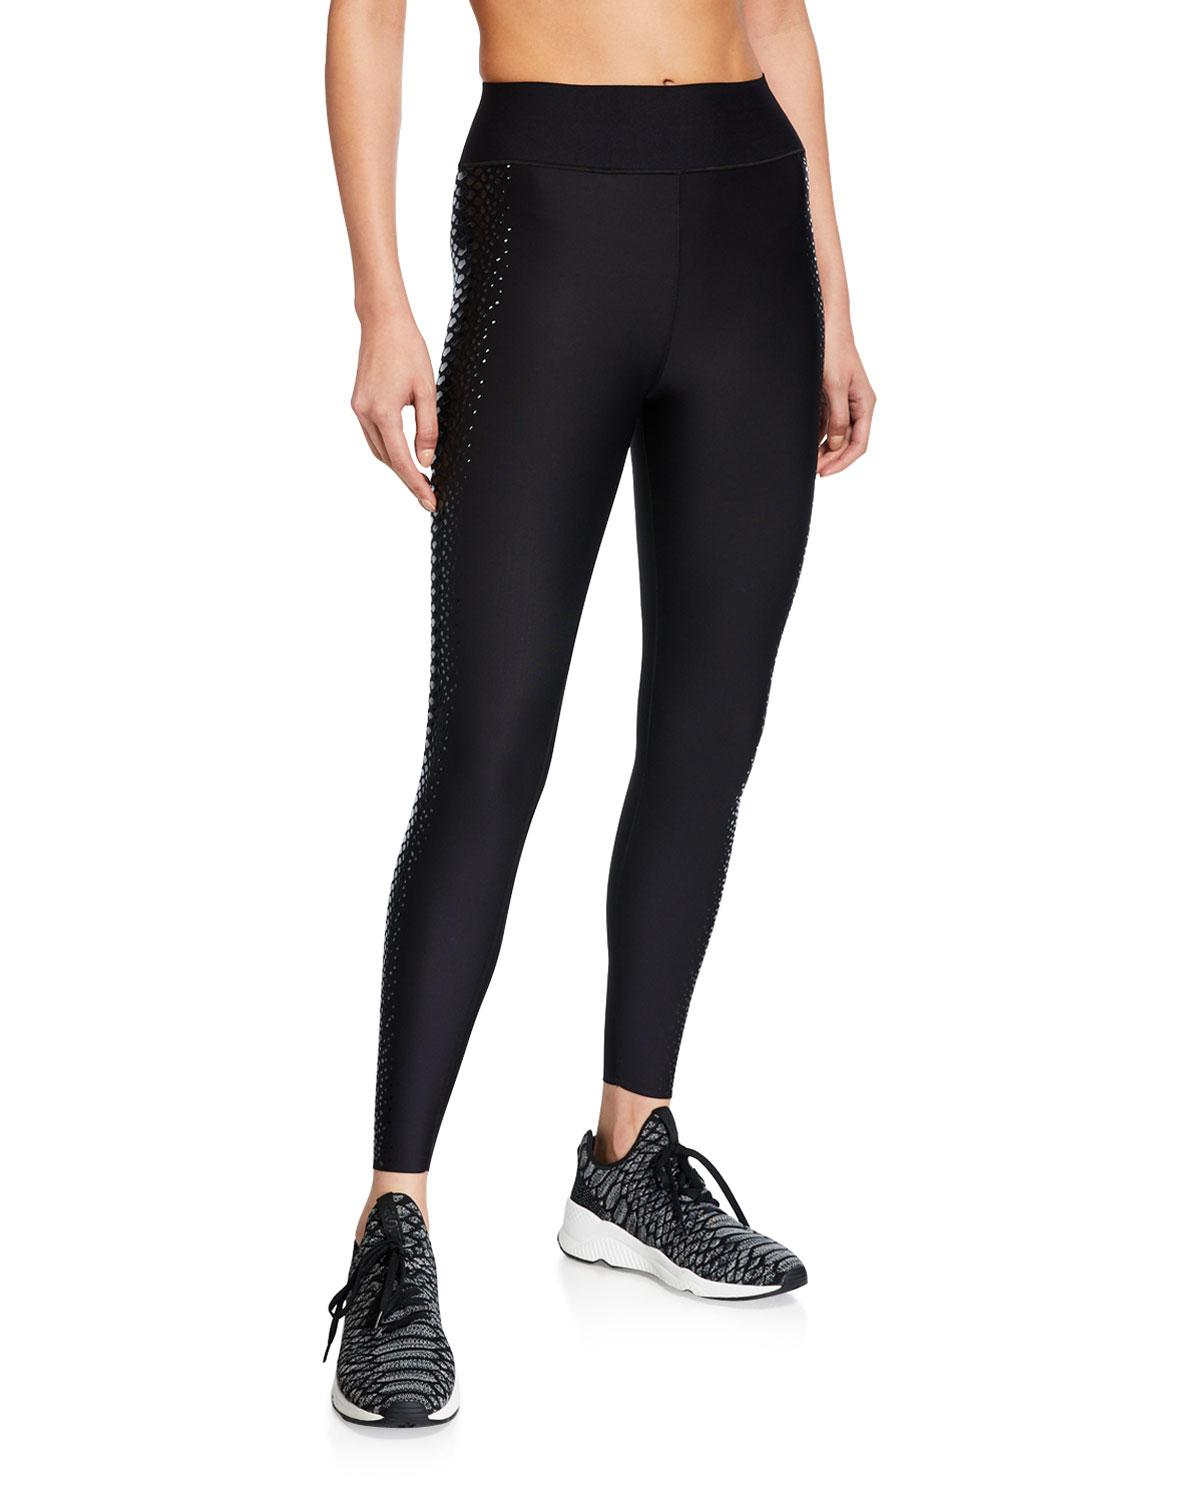 4f8ed0f22065e Lyst - Ultracor Ultra High Boa Leggings in Black